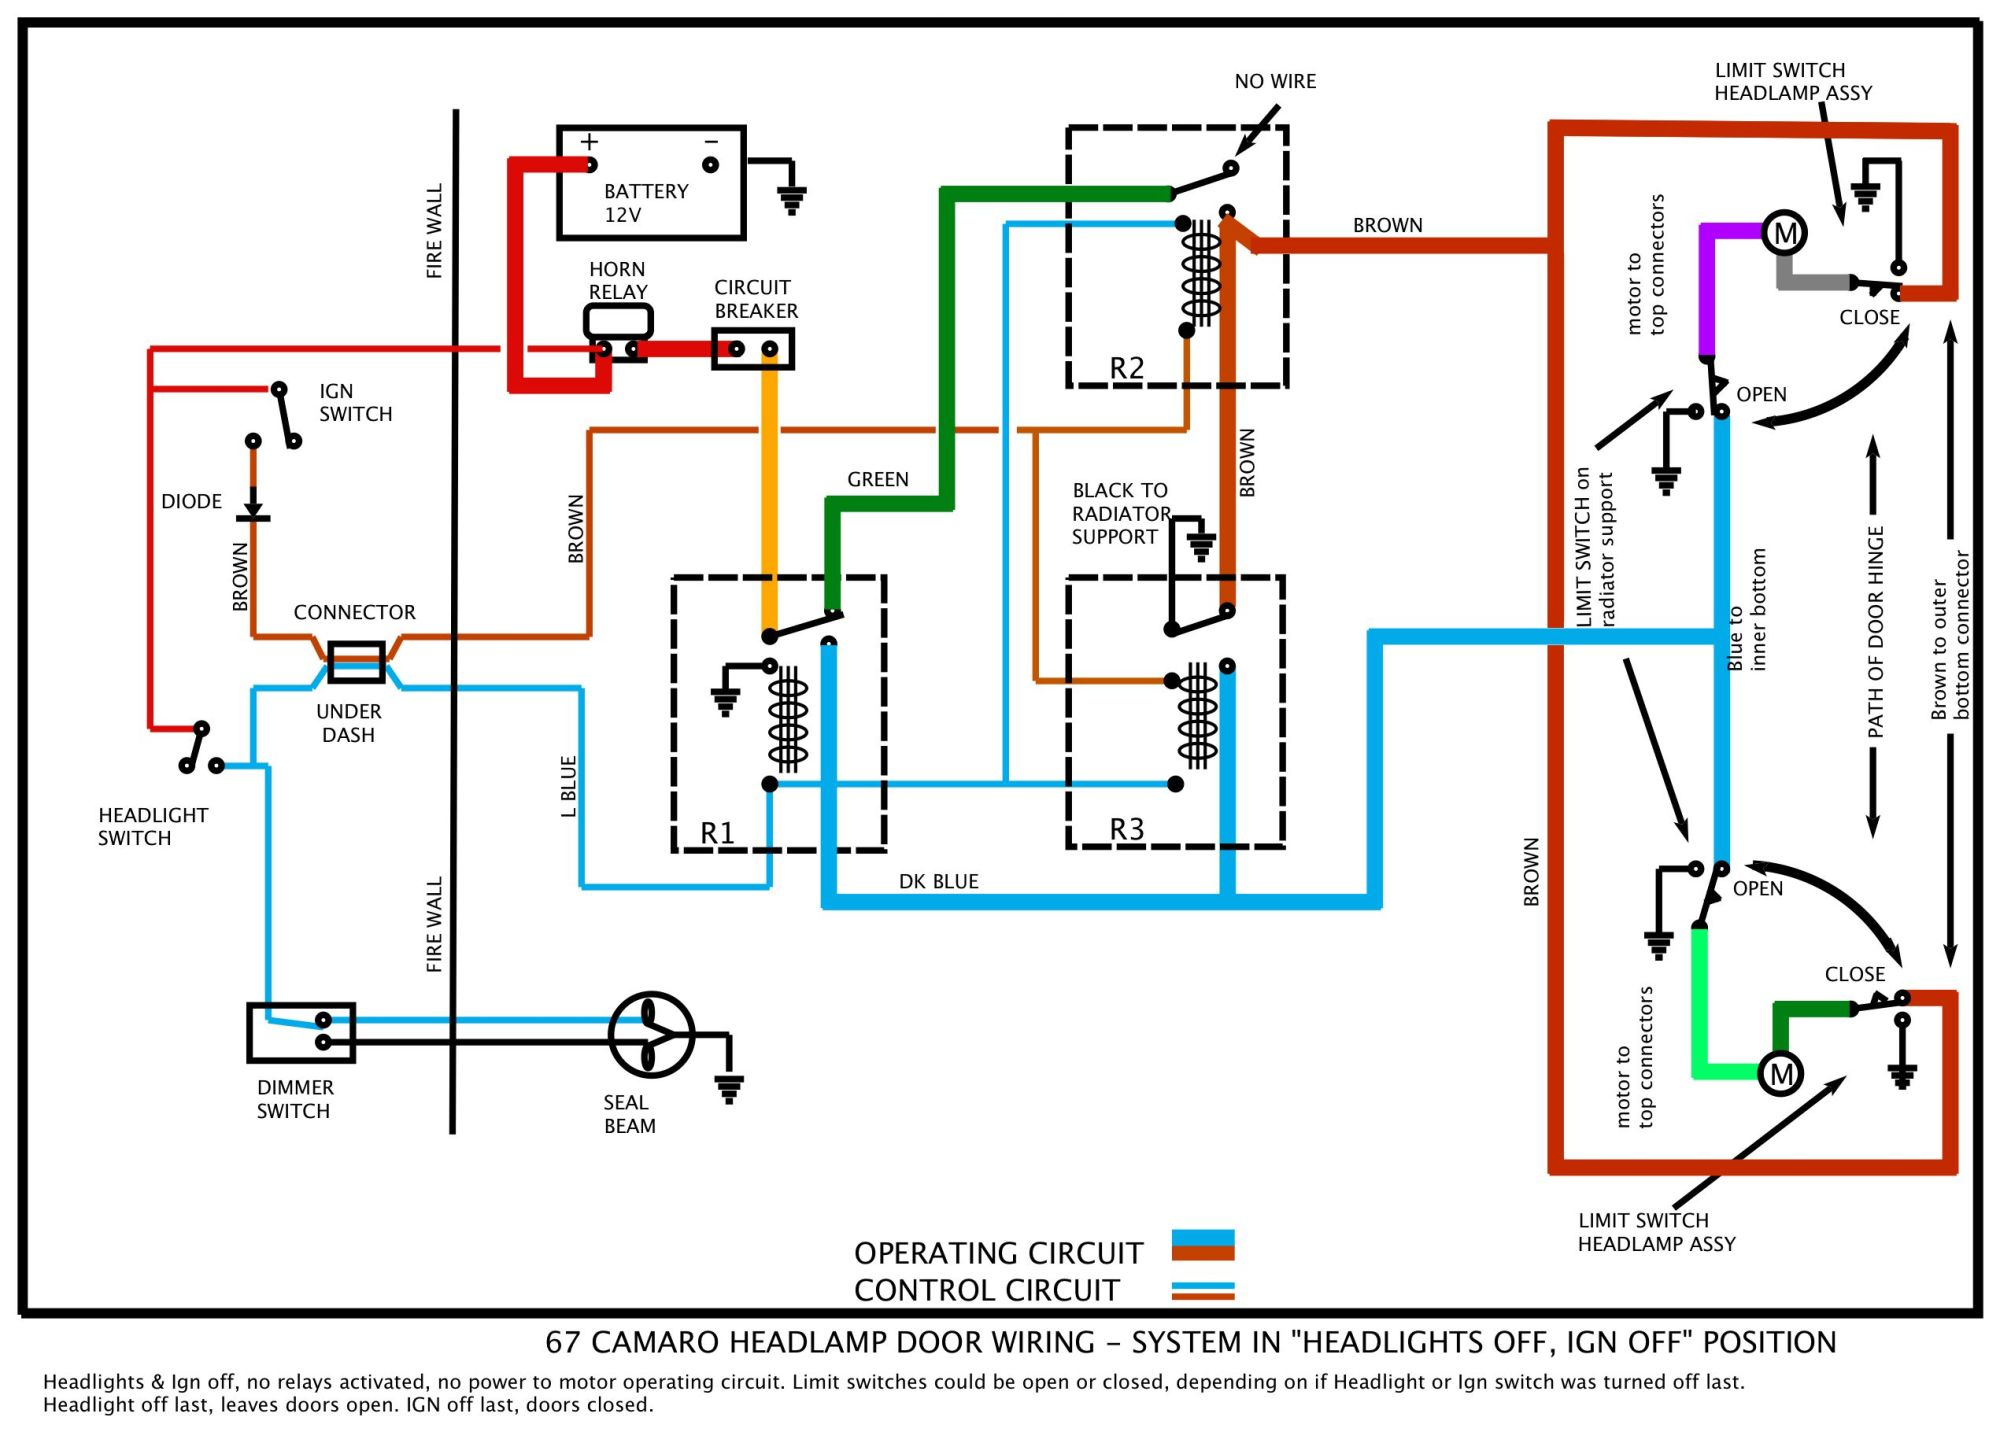 hight resolution of 1967 camaro engine wiring harness diagram wiring diagram completed1967 camaro engine wiring harness on 1969 camaro